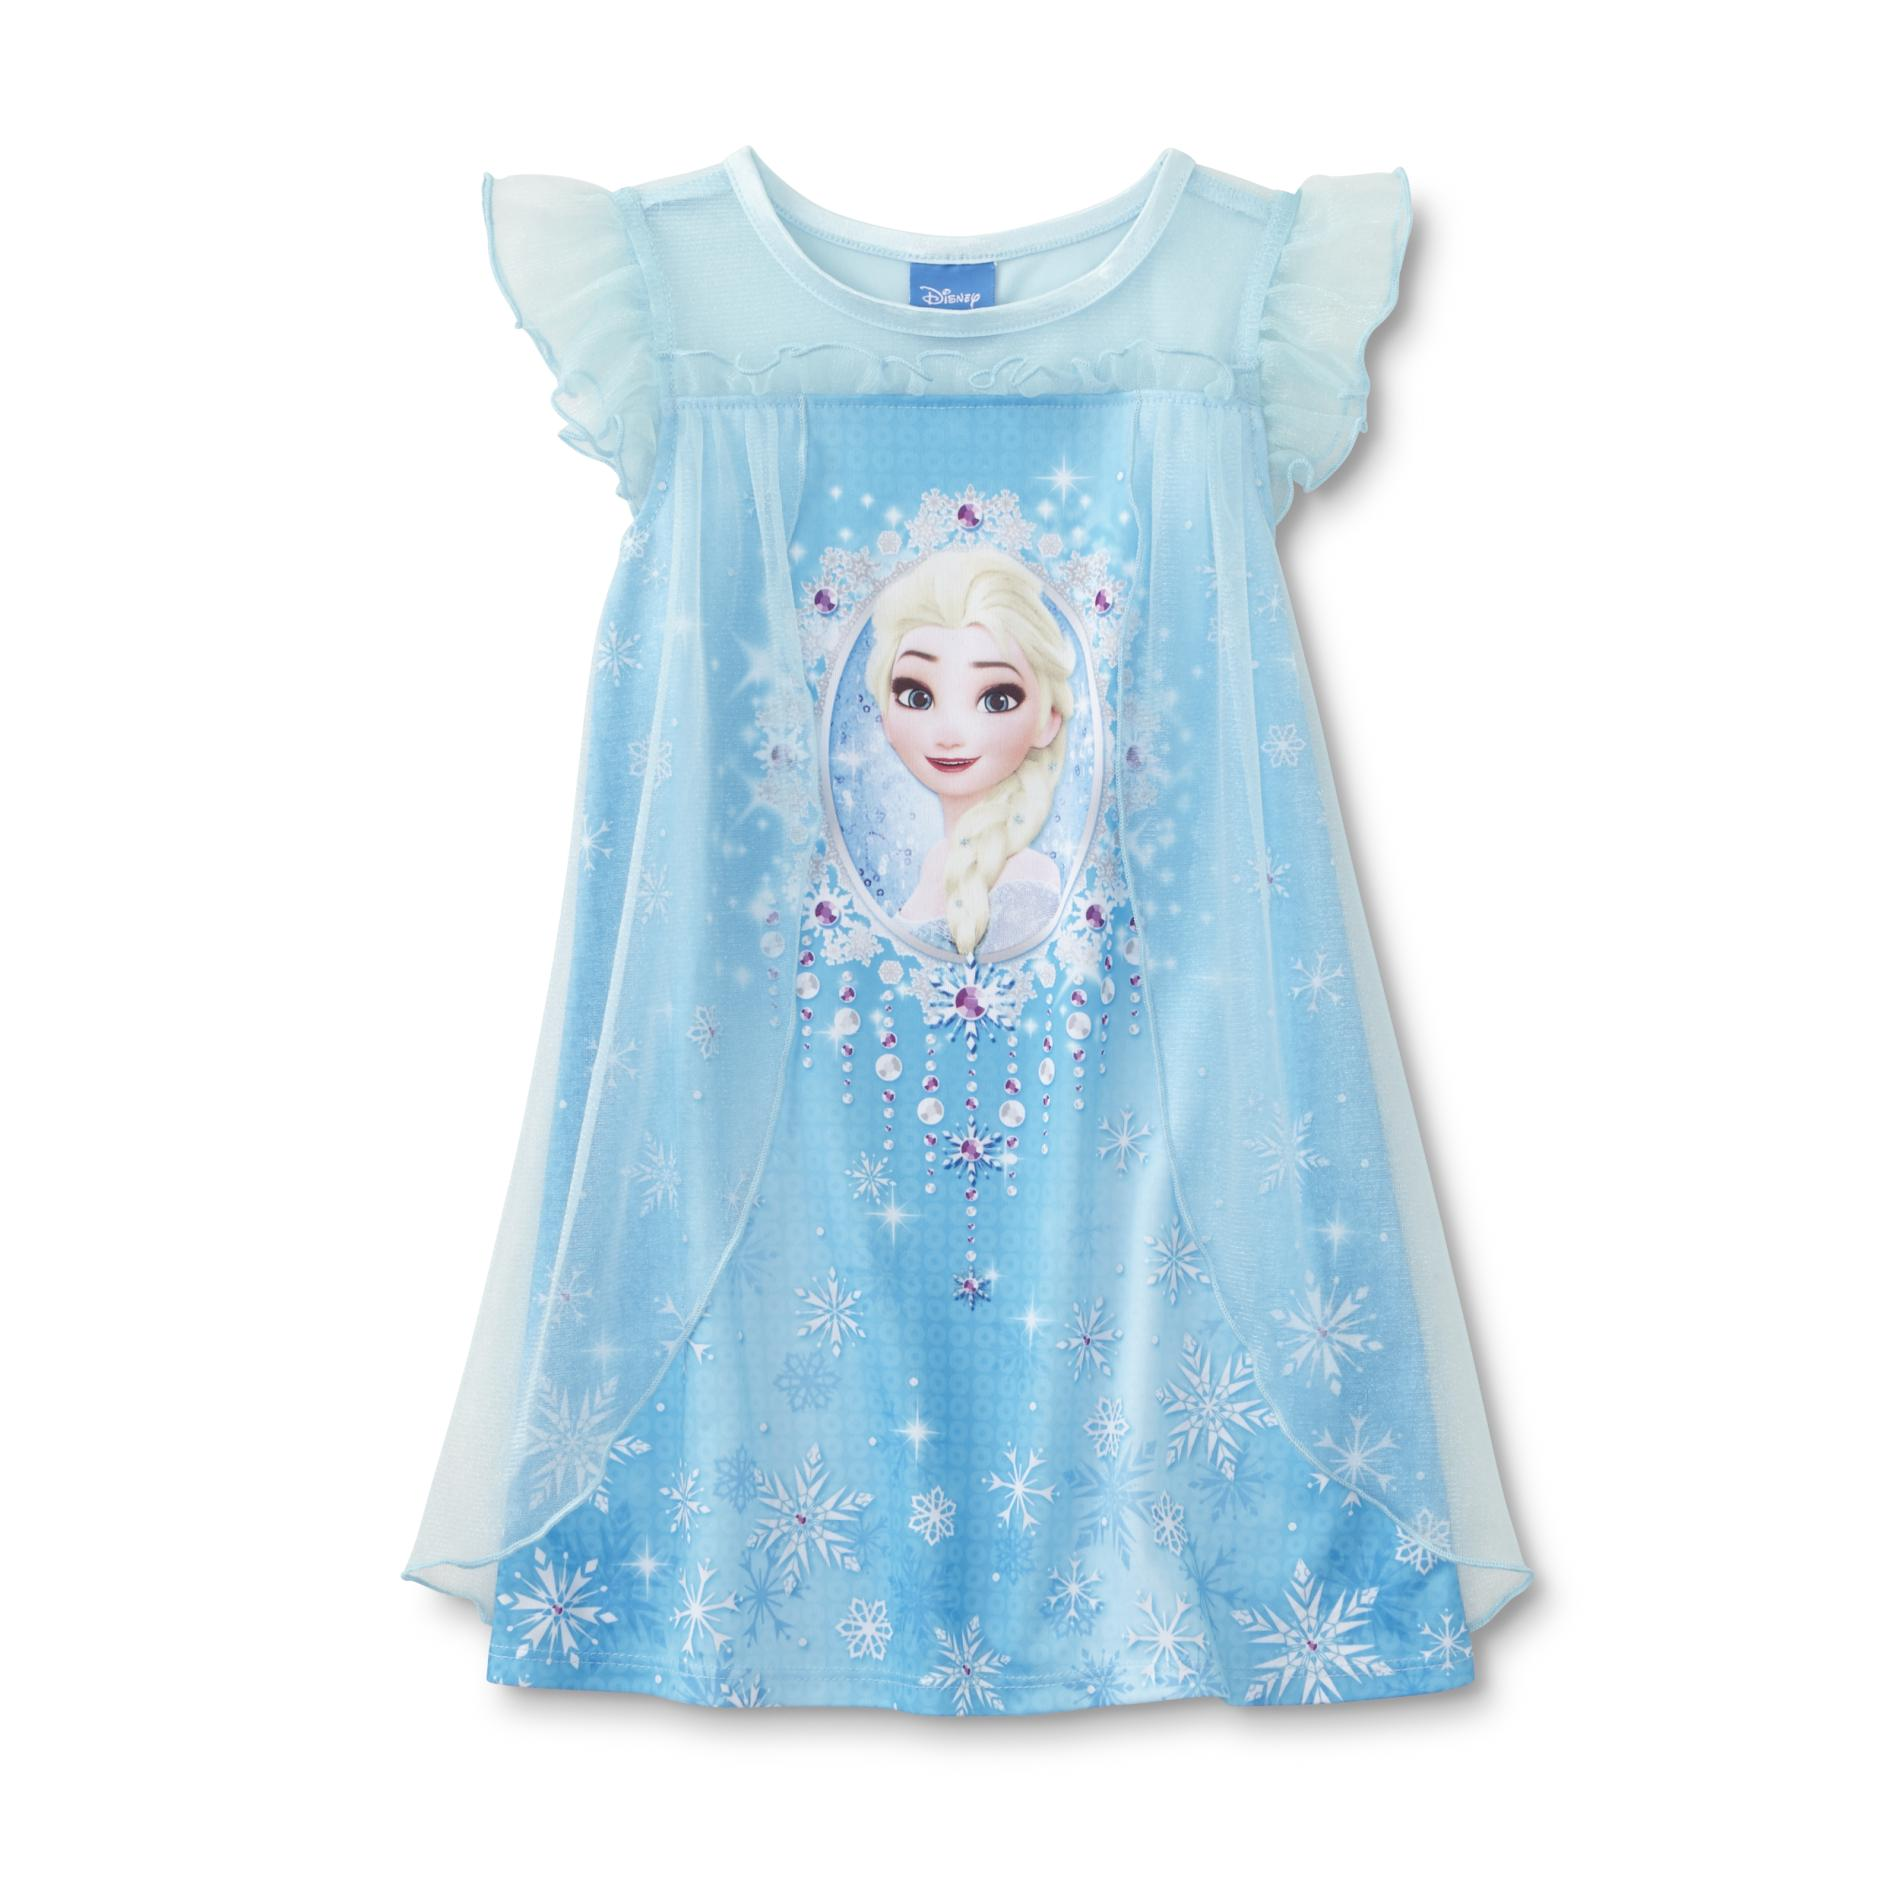 Disney Baby Frozen Toddler Girl's Nightgown